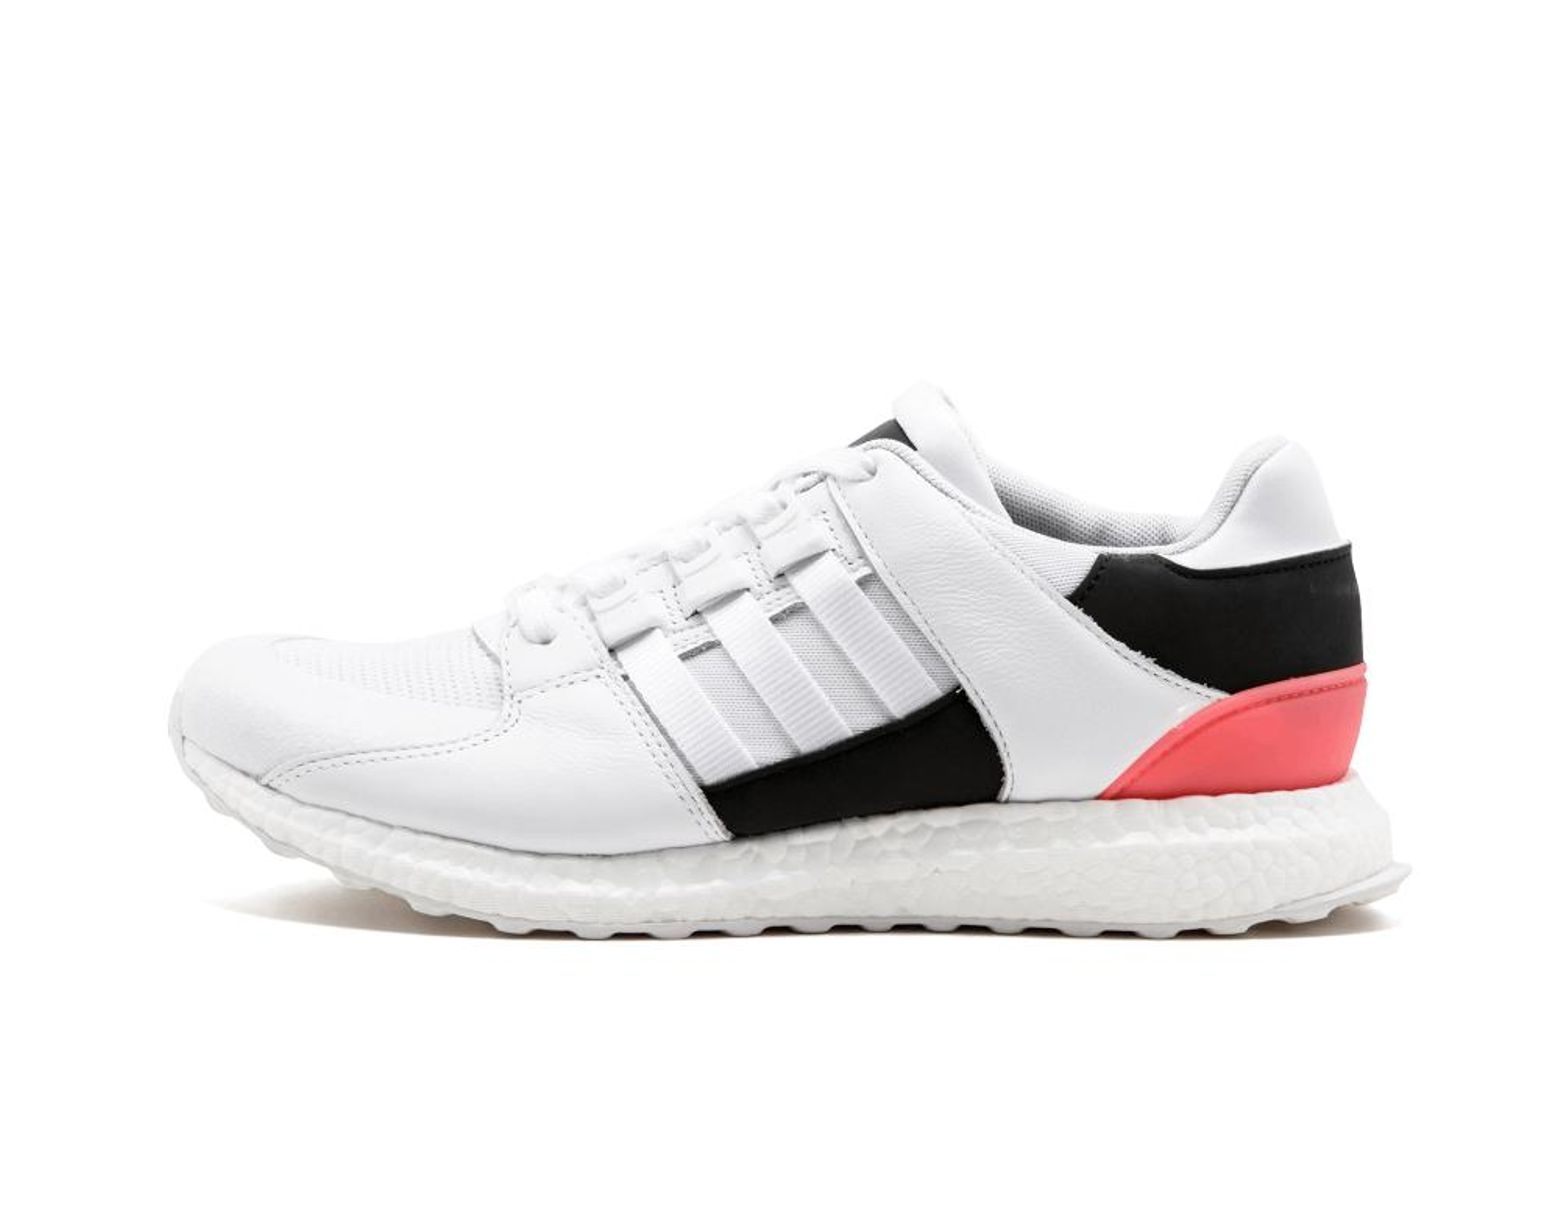 size 40 8e9c9 c6580 Men's White Eqt Support Ultra - Size 7.5